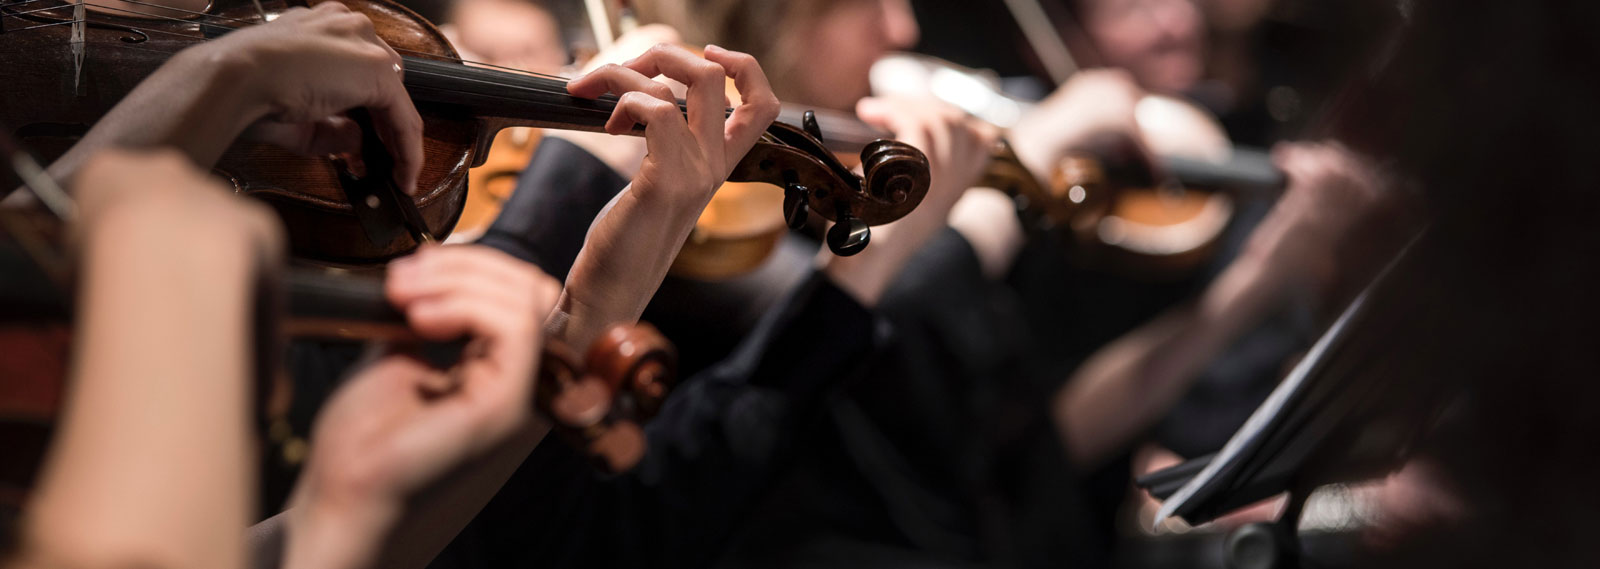 Closeup of a violin concerto